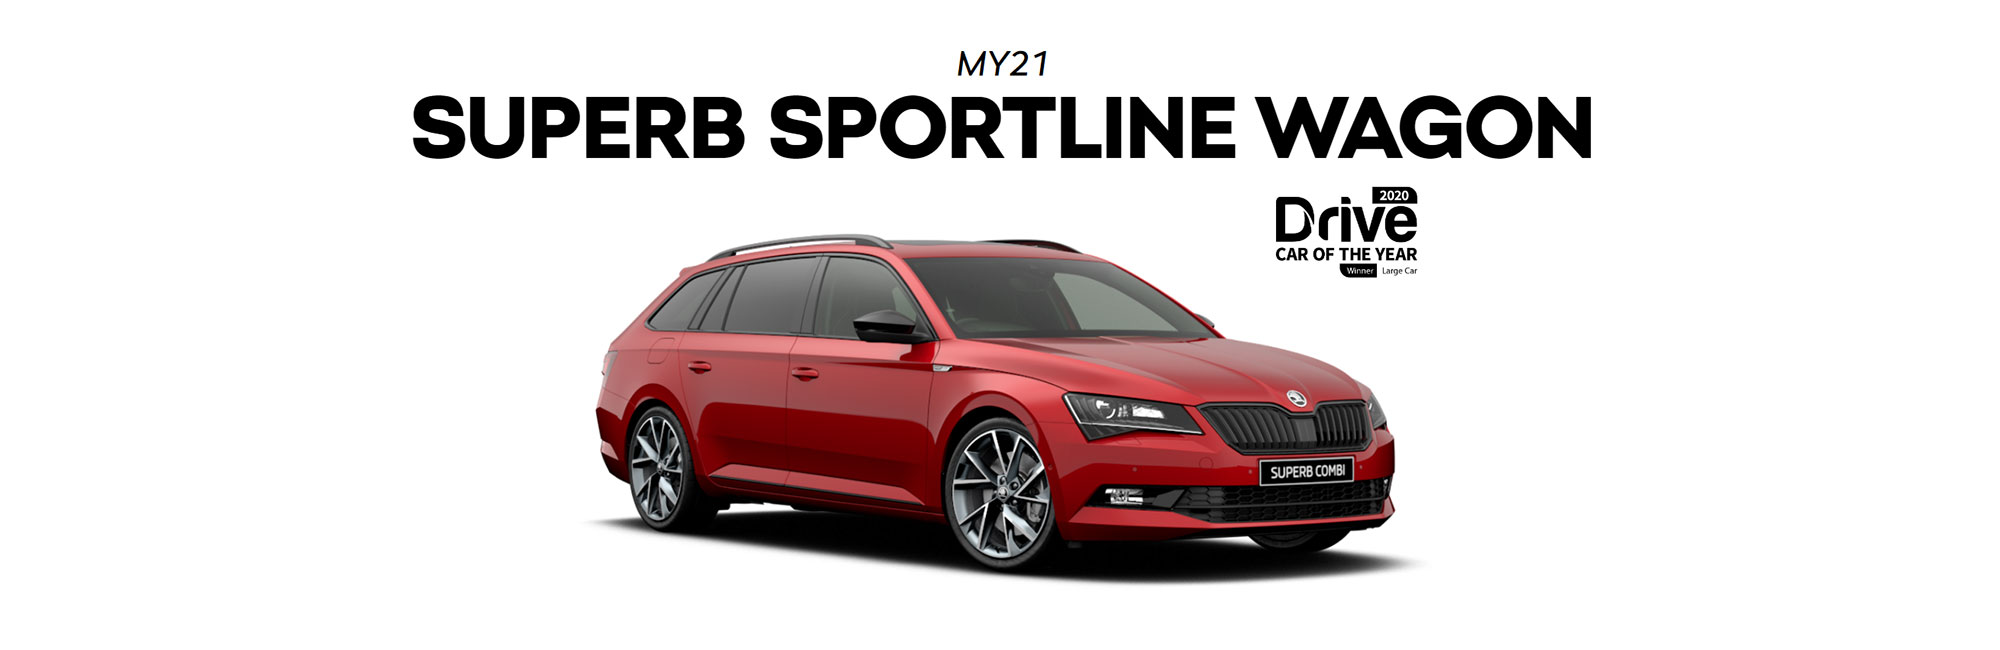 superb-sportline-wagon